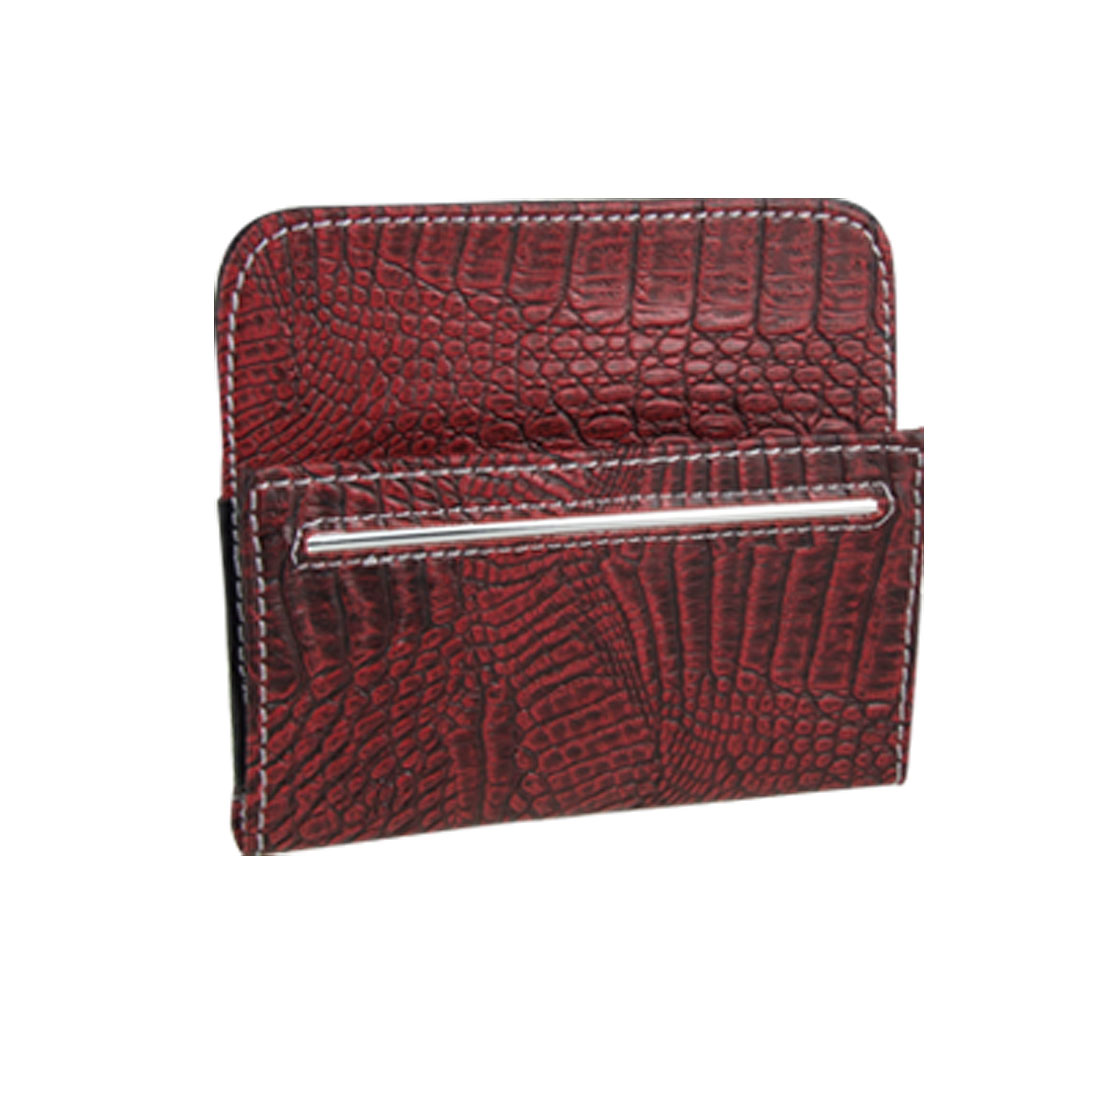 Burgundy Crocodile Print Hook and Loop Fastener Closure Phone MP3 Pouch Holder for Car